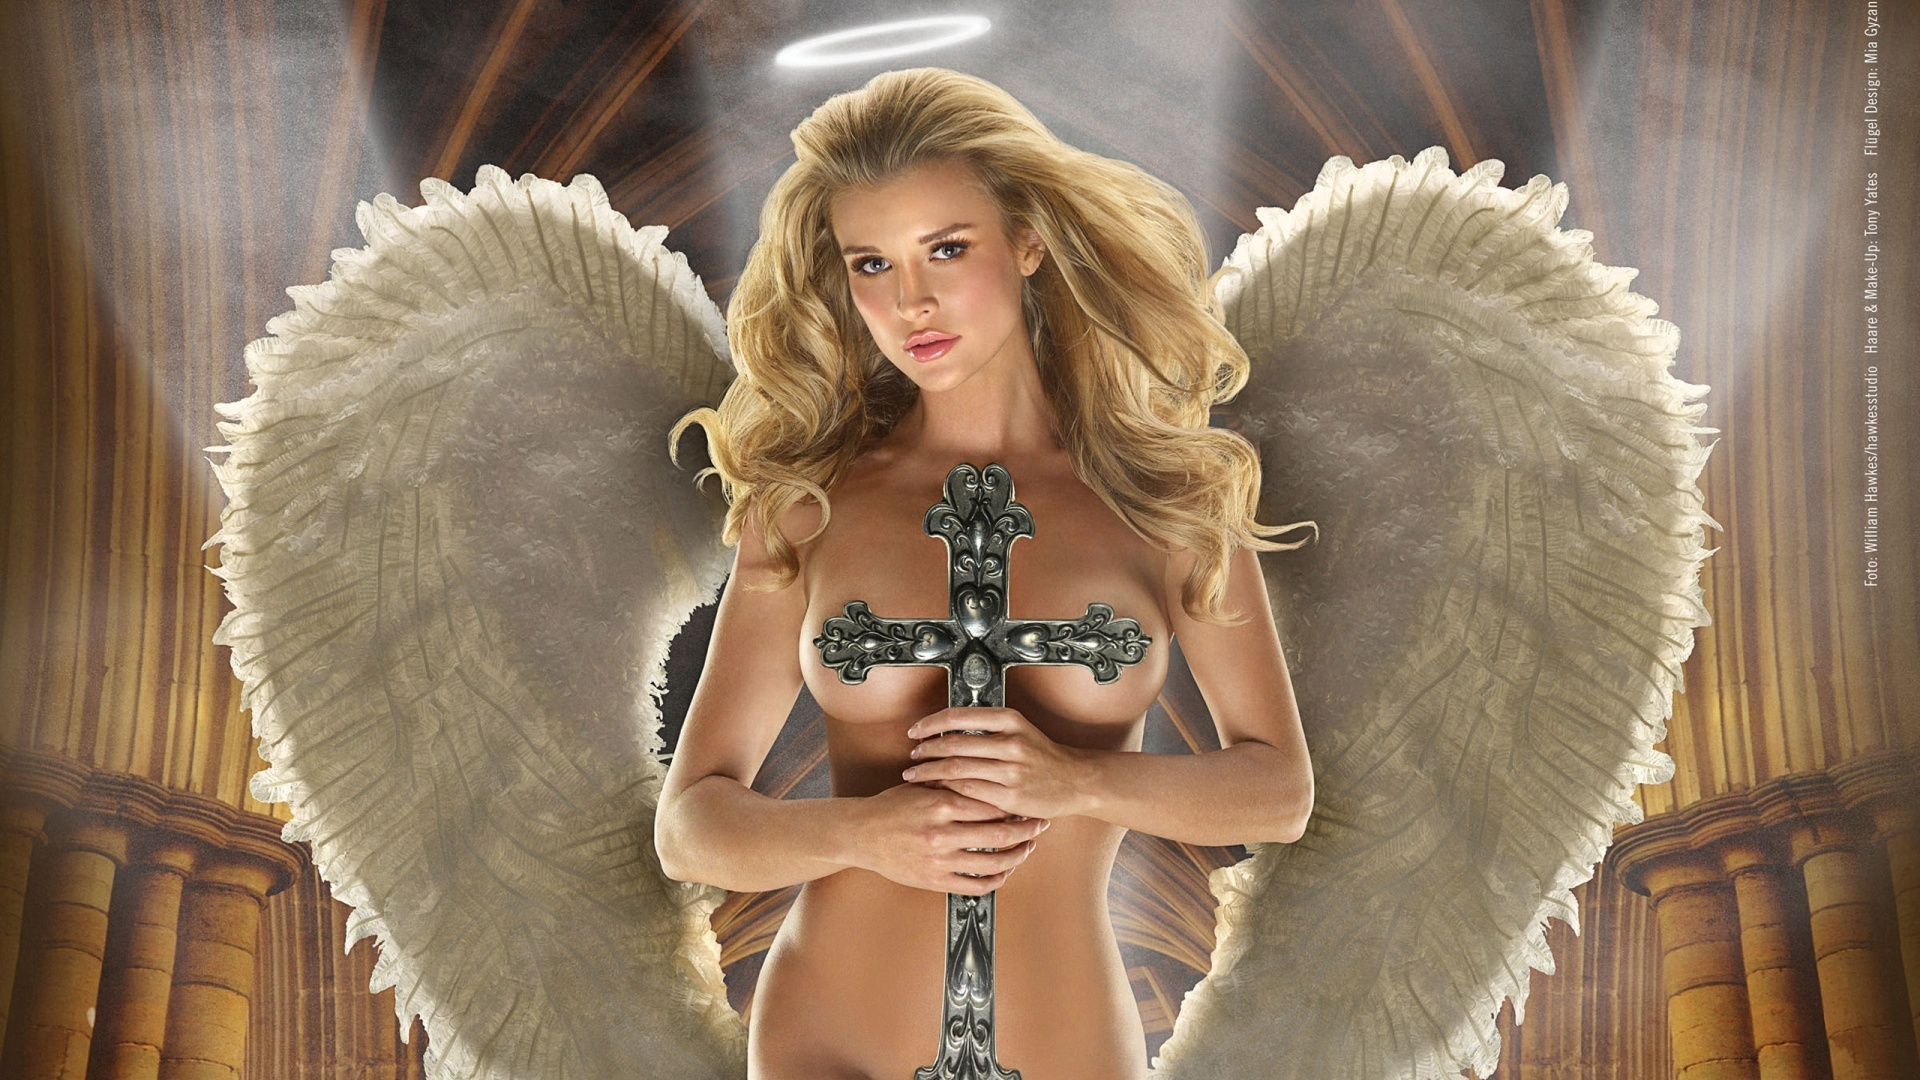 blonde-and-nude-angel-girl-with-wings-and.jpg